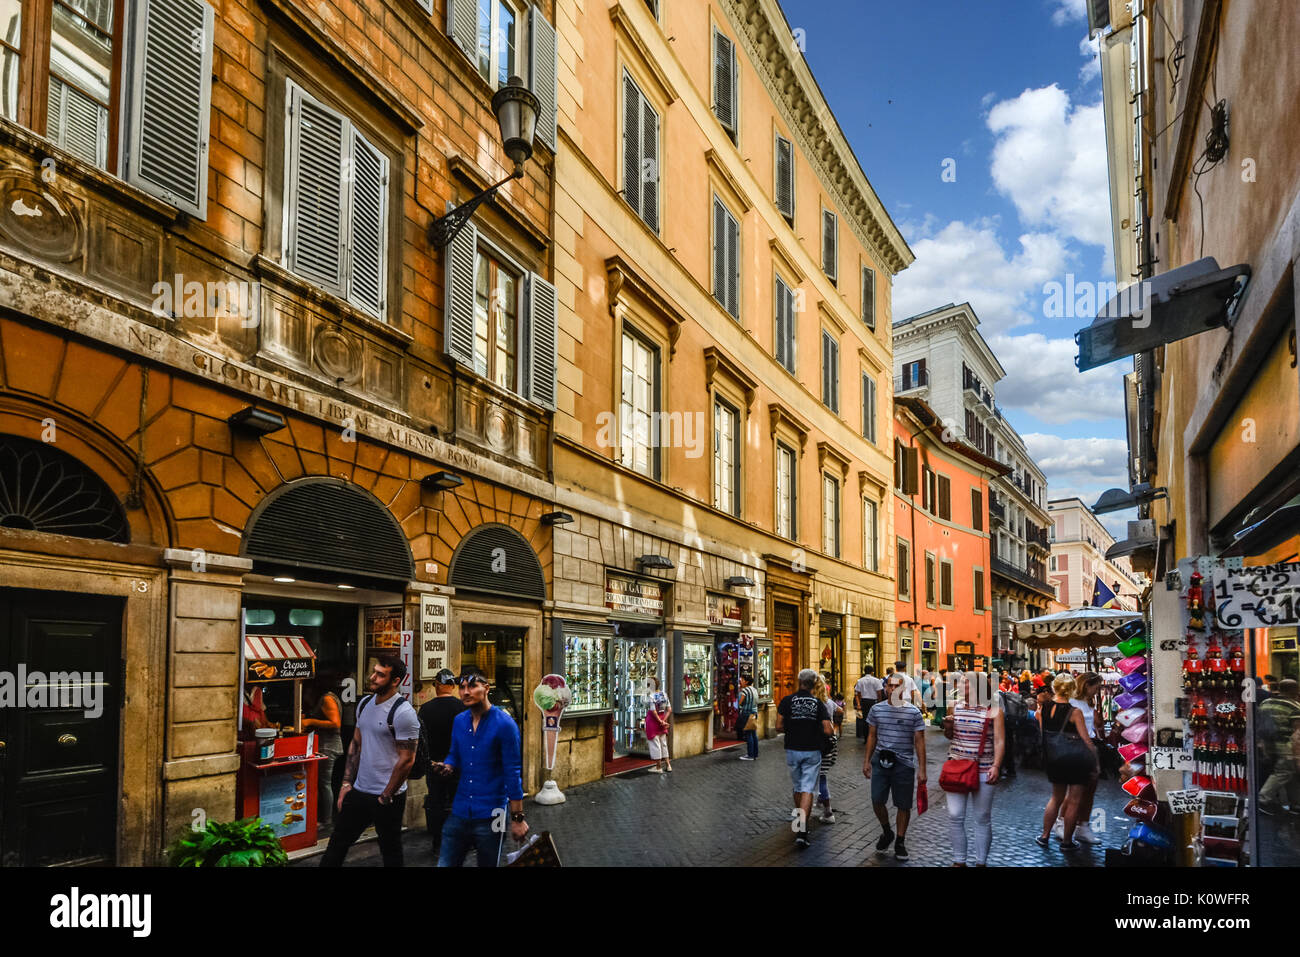 A colorful street in Rome Italy as tourists window shop and enjoy the historic downtown area - Stock Image